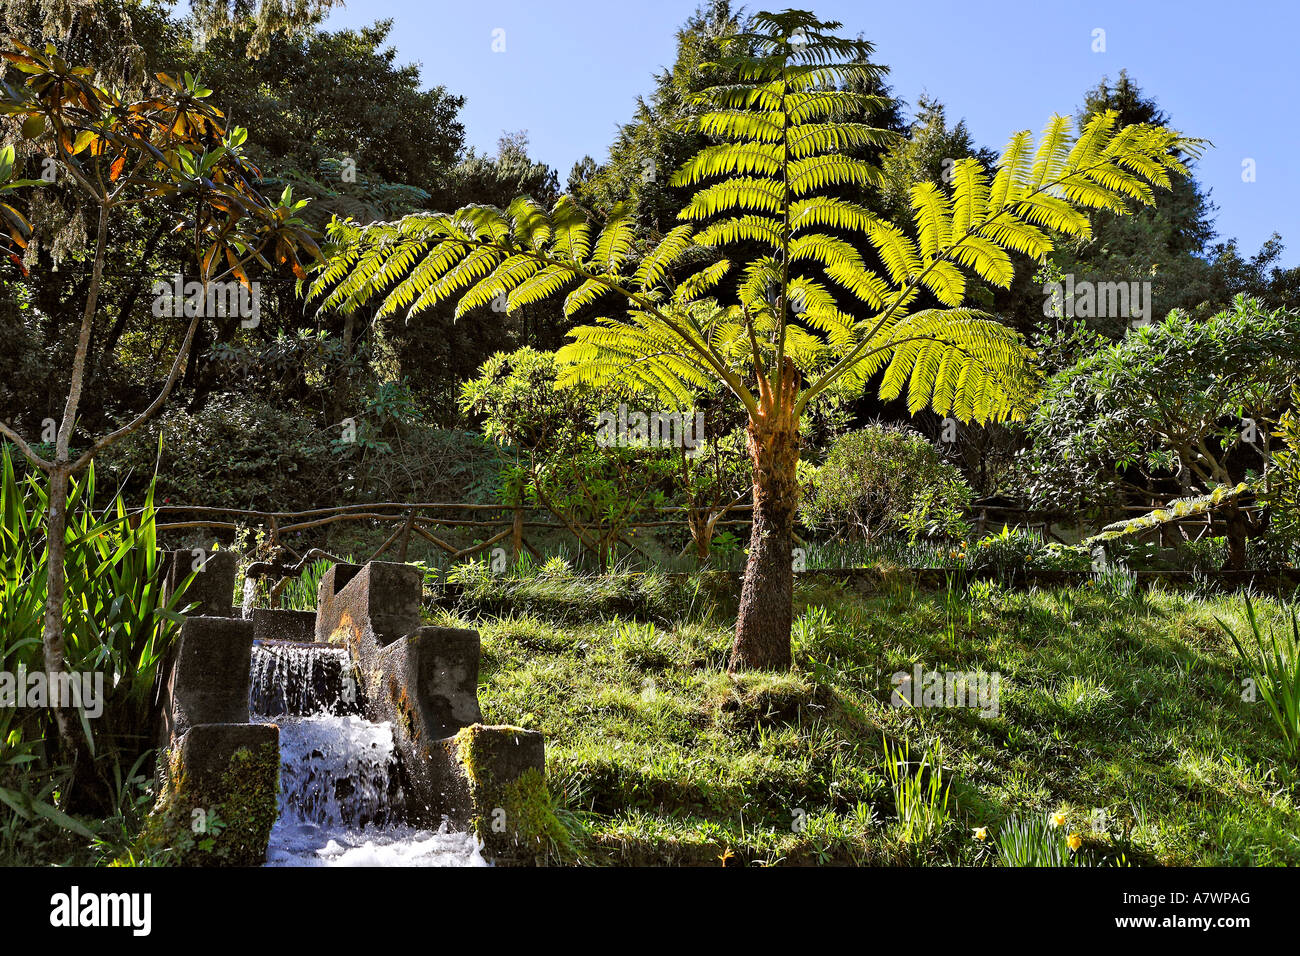 A fern tree at the trout breeding, Ribeiro Firo, Madeira, Portugal - Stock Image